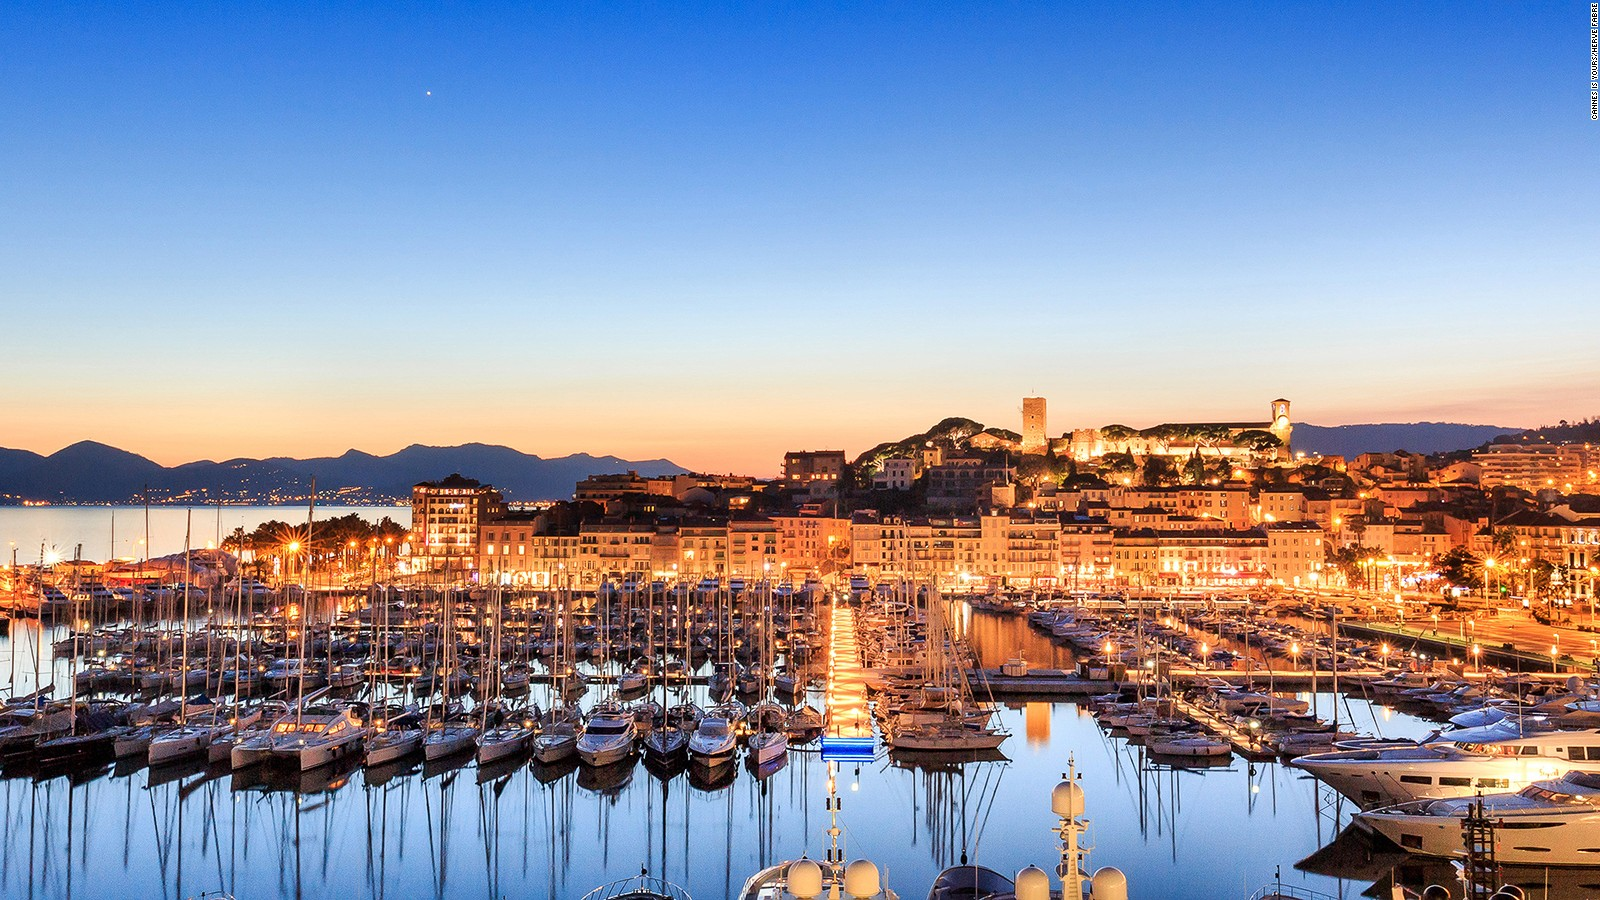 170510135753-cannes-city-guide-croisettecannes-is-yours-photo-herve-fabre-14-full-169